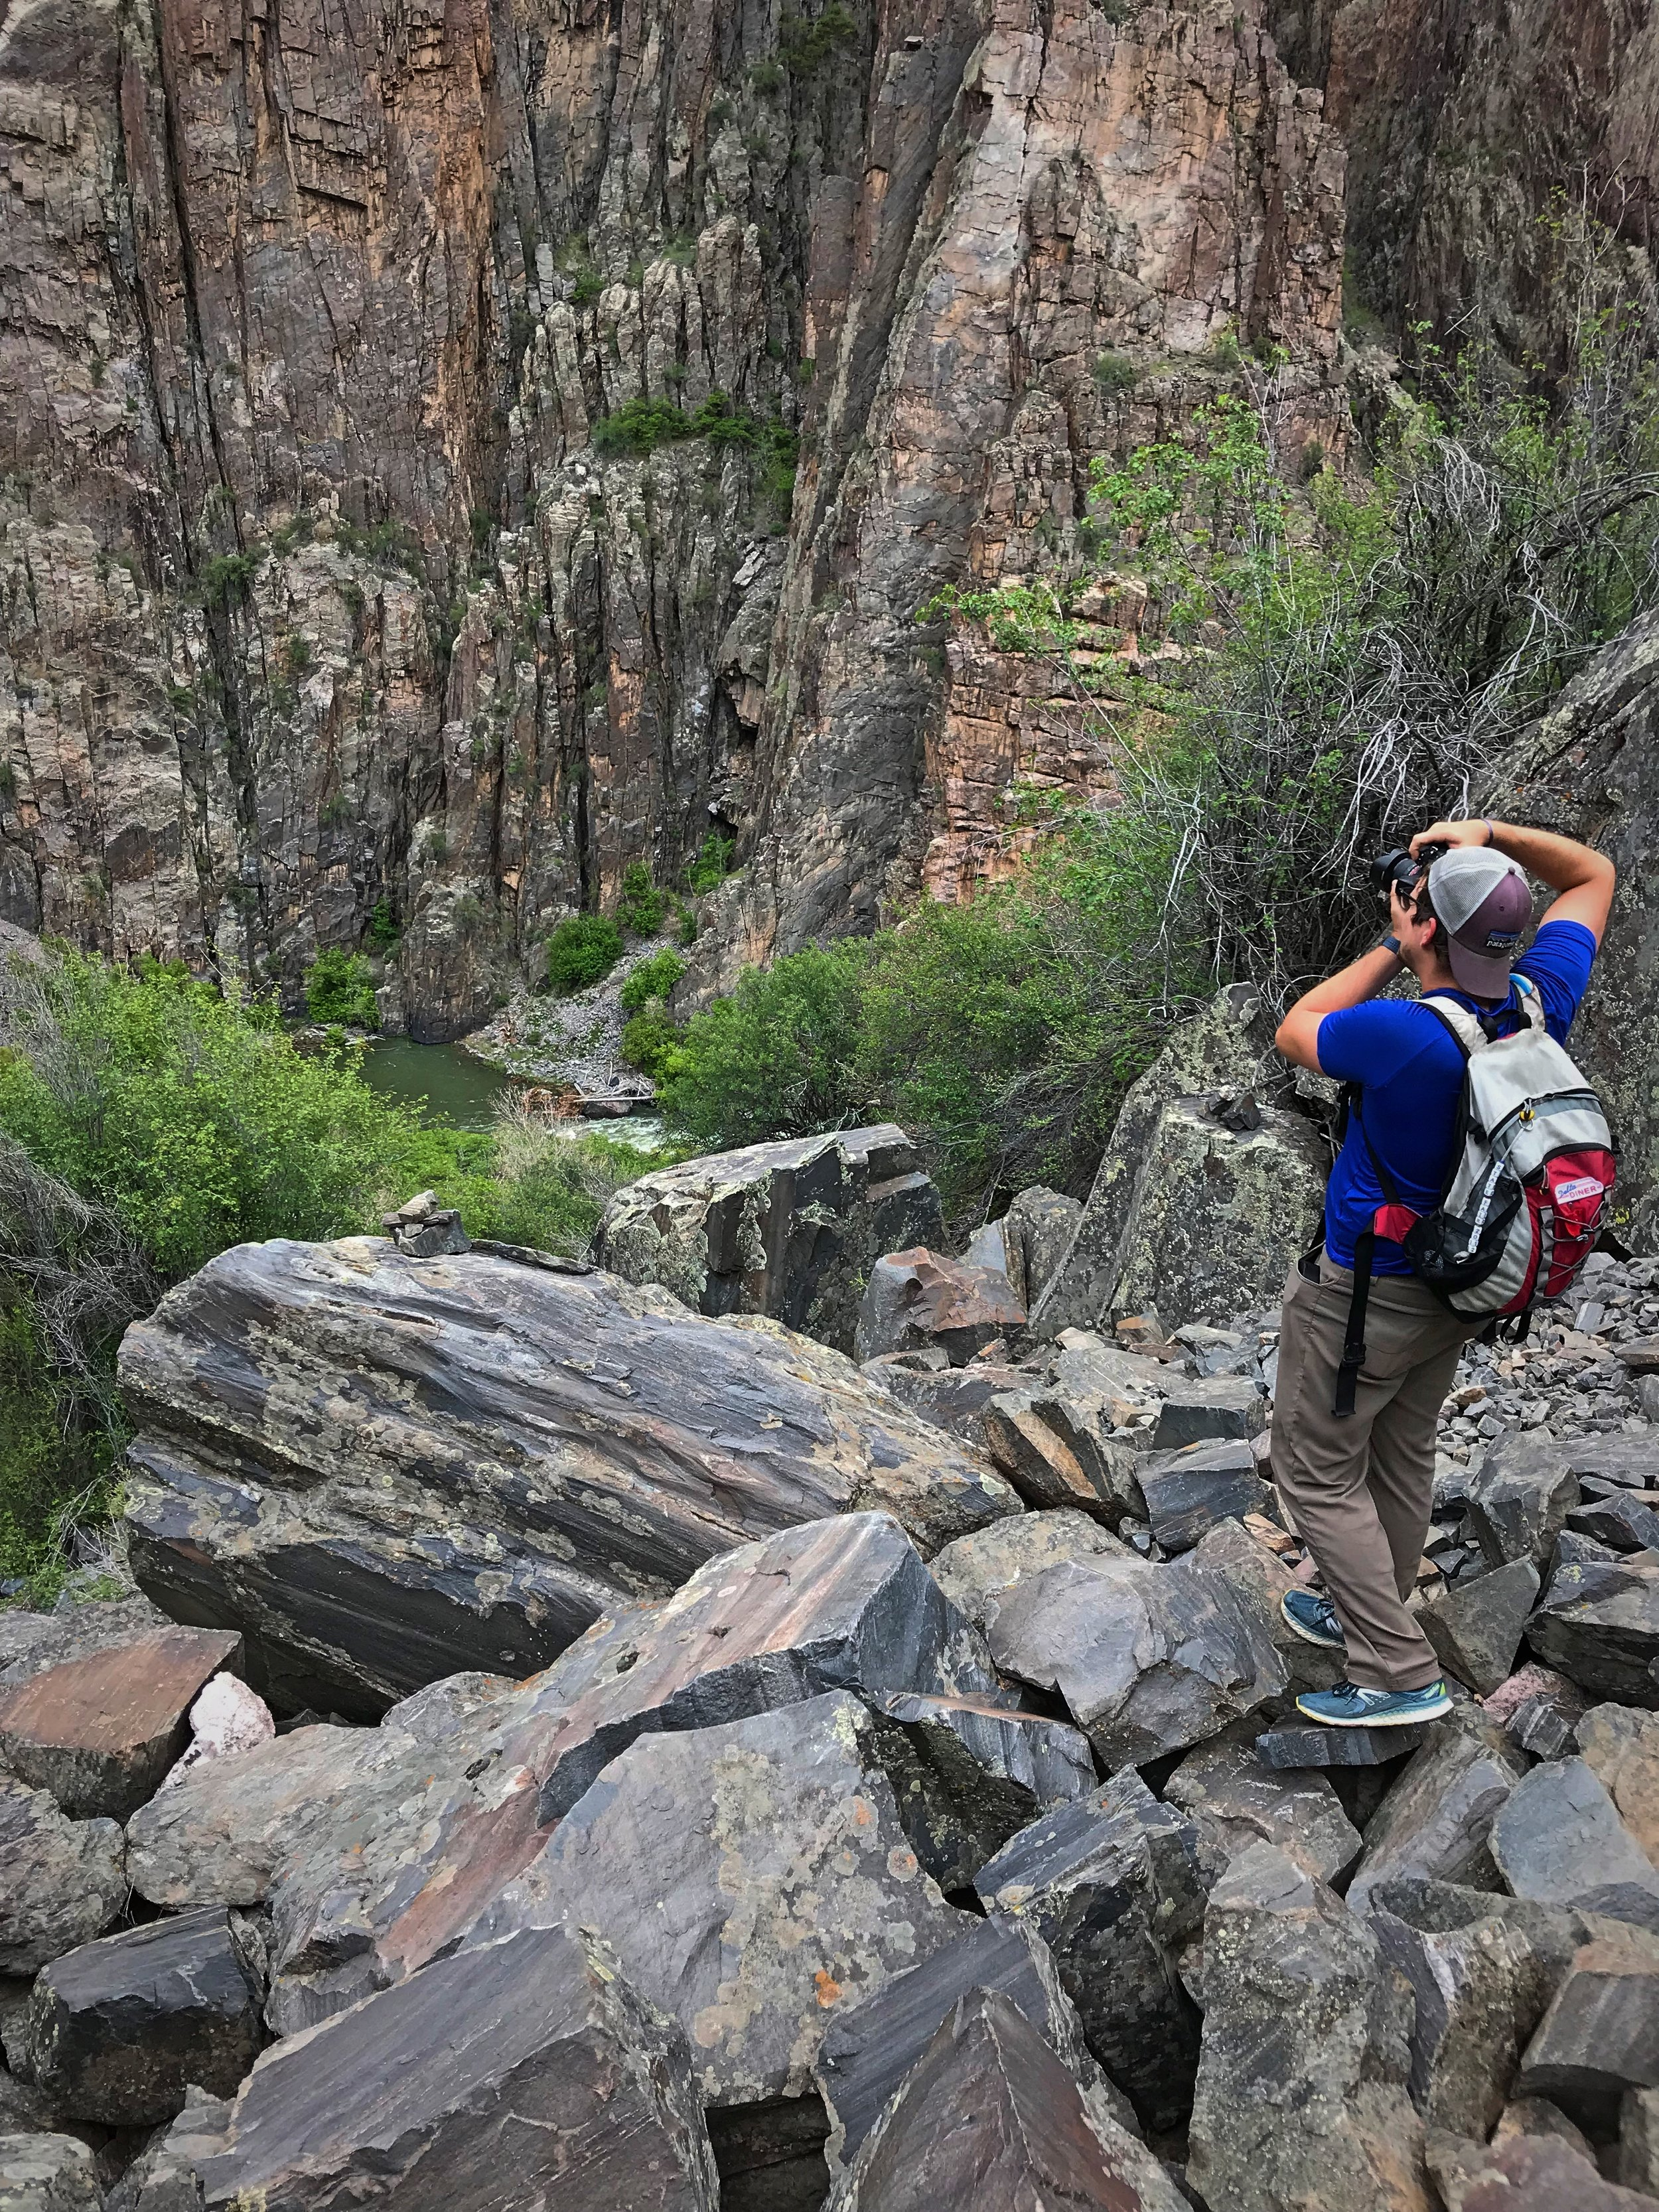 The size of the rocks varies significantly in the final portion of the Gunnison Route.